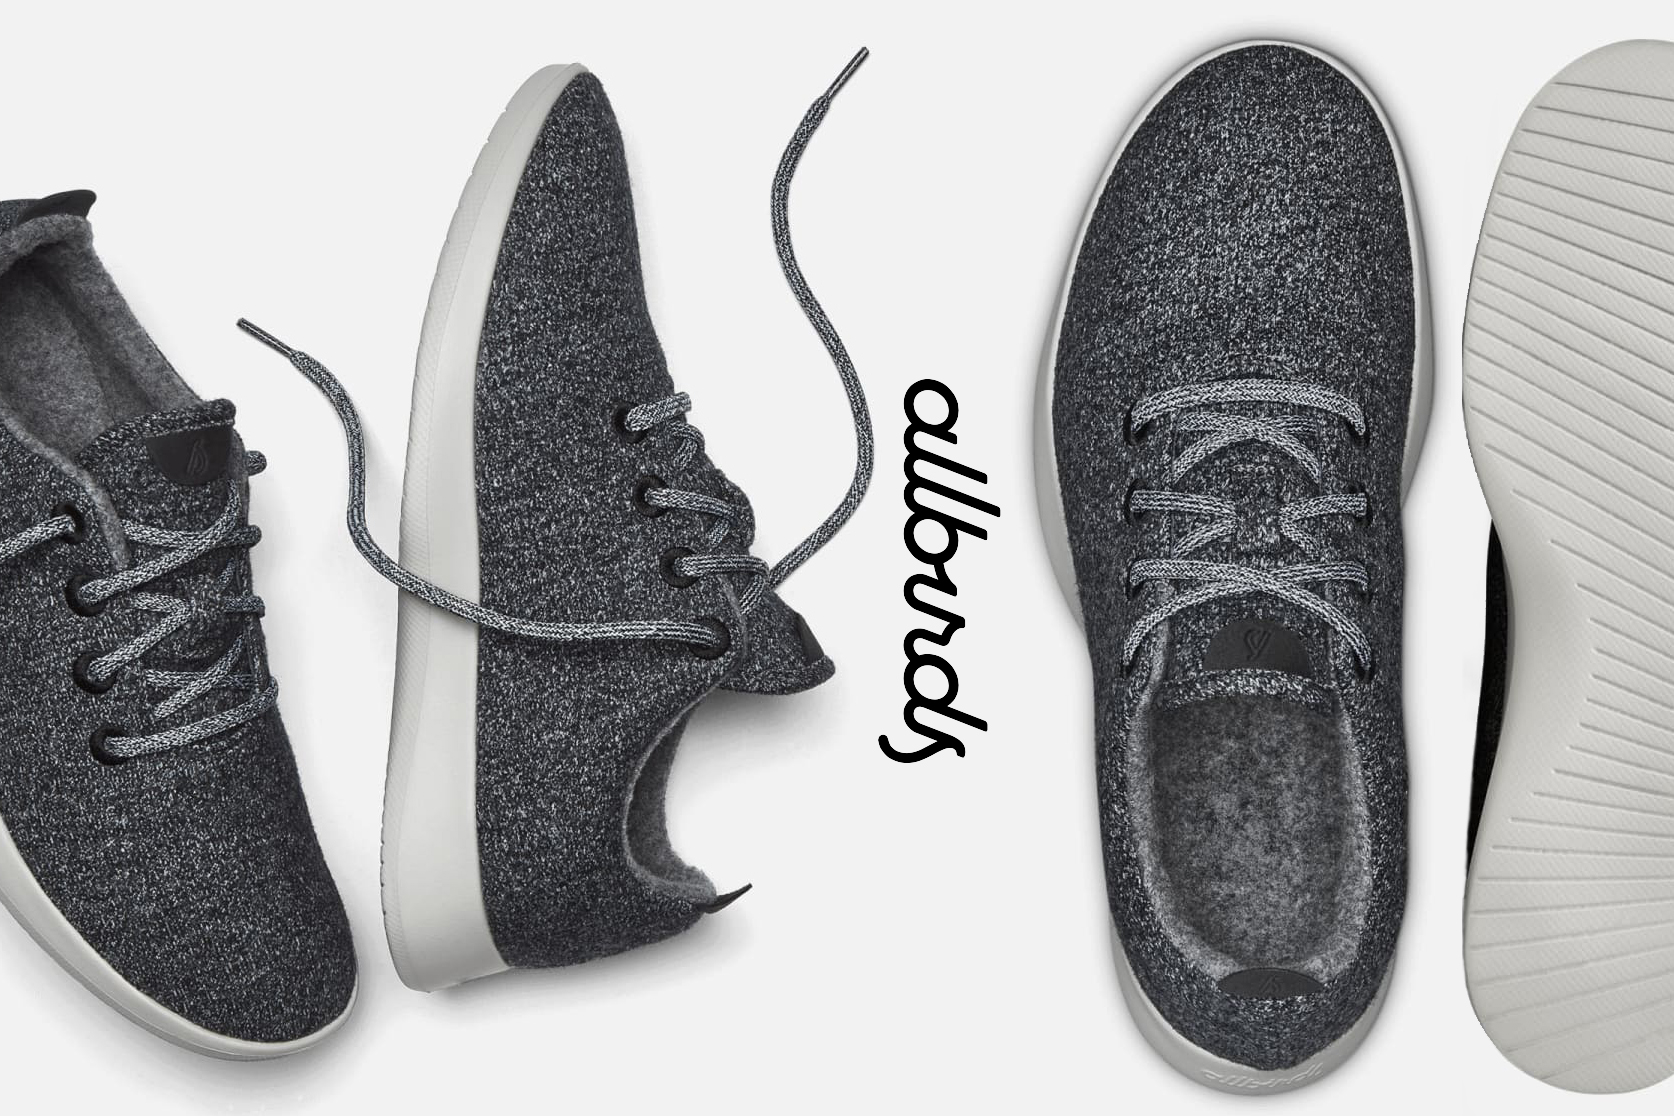 allbirds - Seriously the most comfortable shoes, I've lived in mine! Allbirds use recycled plastic bottles to make their shoes. As an FSC certified company, they also source materials that meet strict standards to protect forests. They carbon neutral for their entire supply chain.